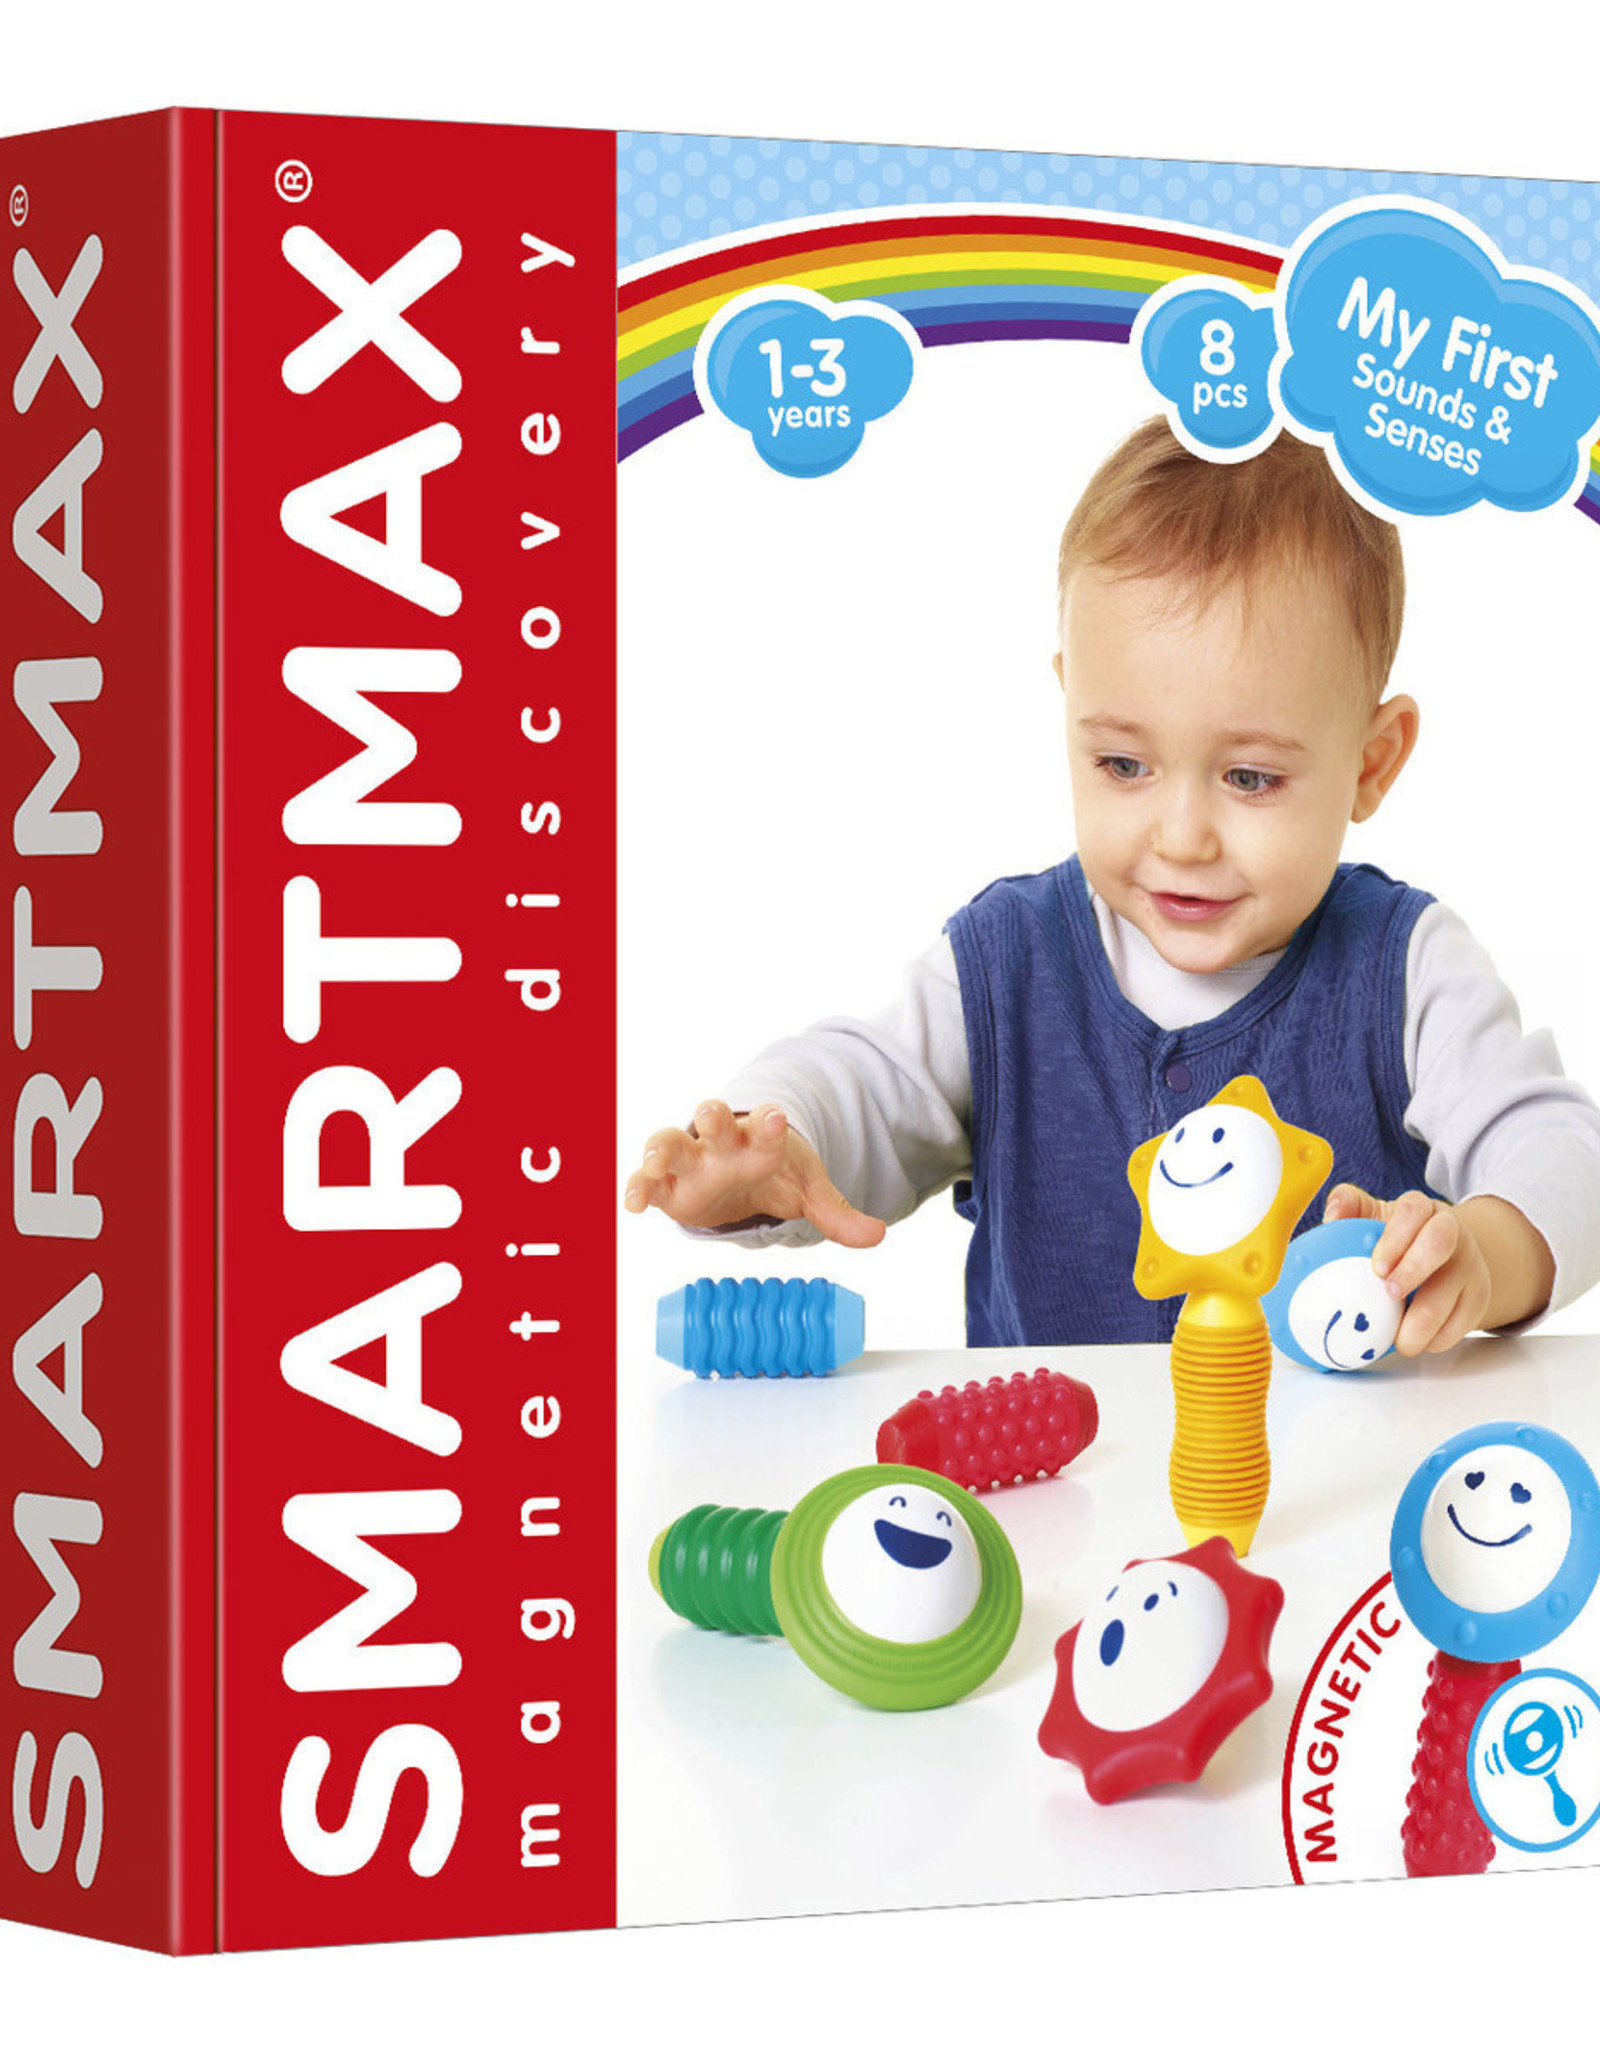 Smartmax Sounds & Senses